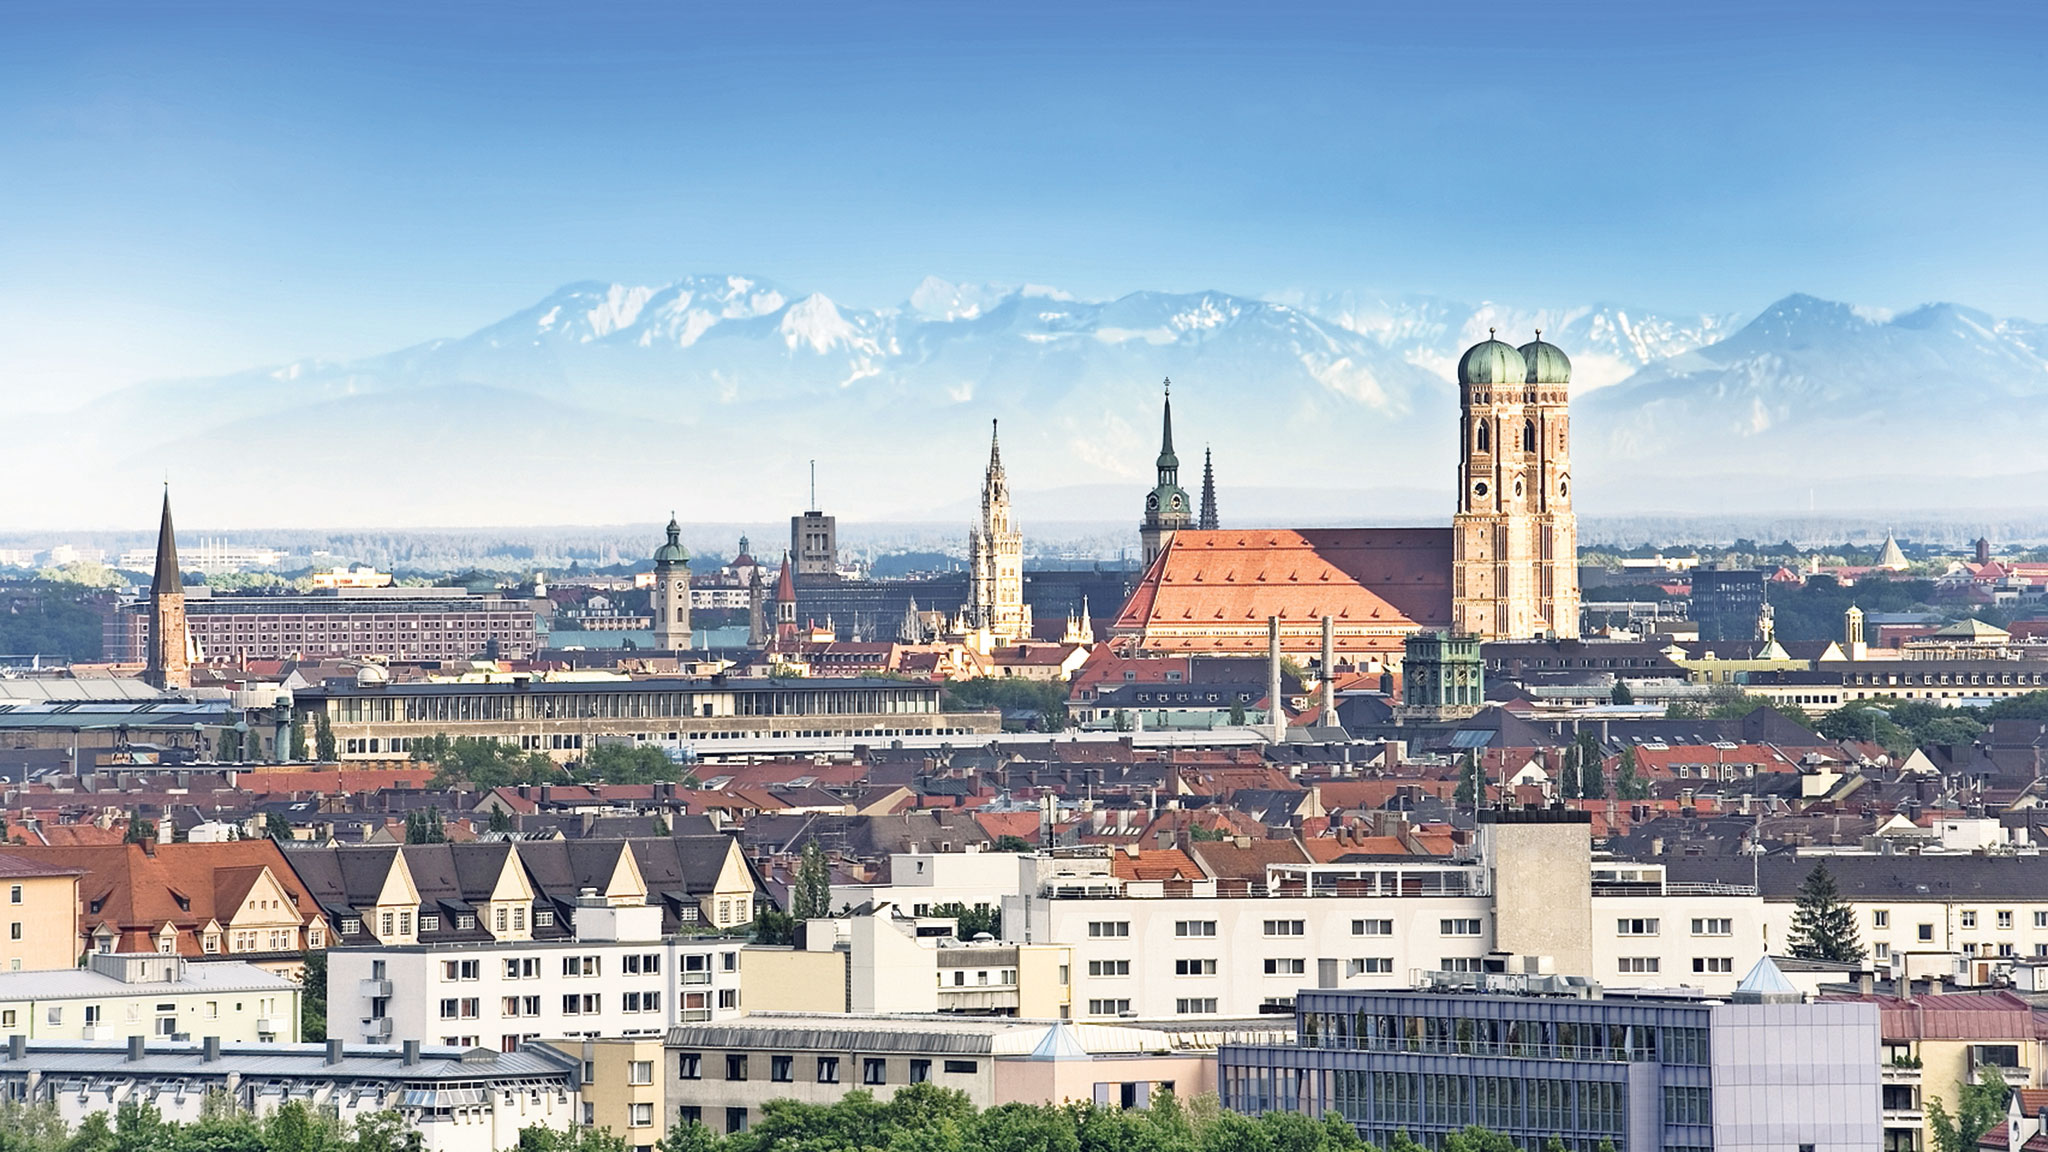 Cash Pool Flughafen München Why Munich Is The Most Expensive Place In Germany To Buy A Home